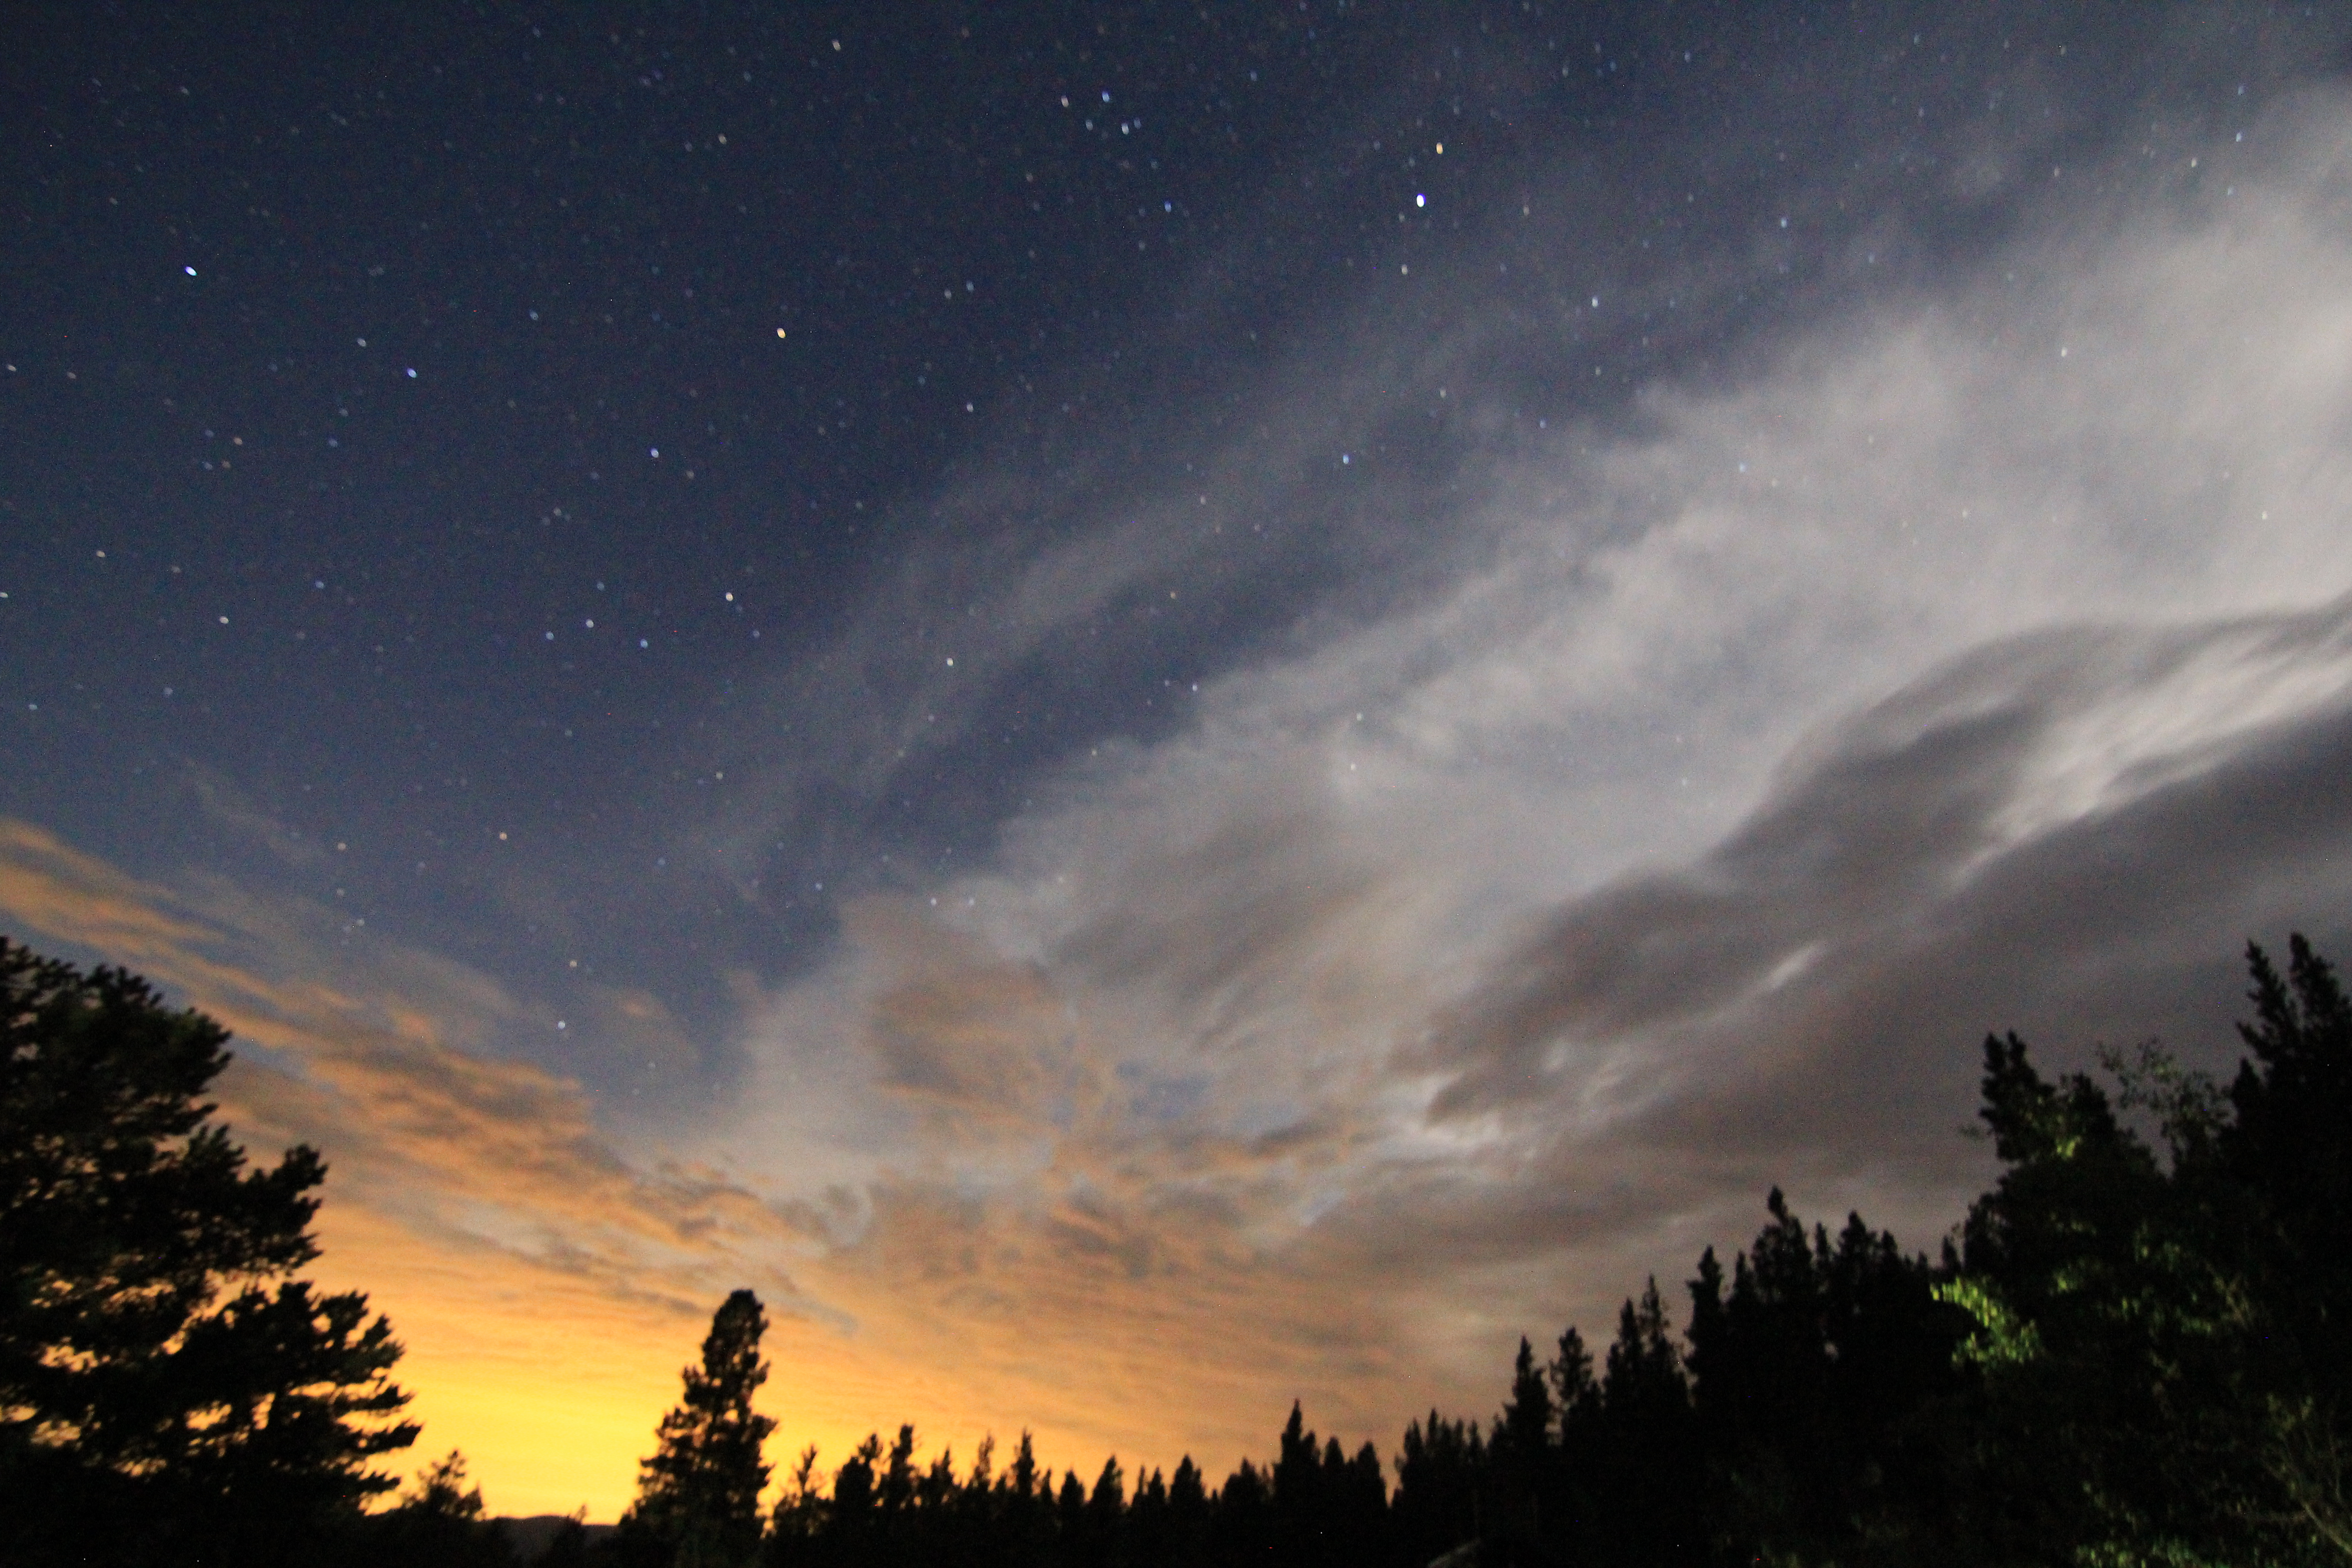 The sky as viewed from the Longs Peak trailhead at 2am. Amazing!